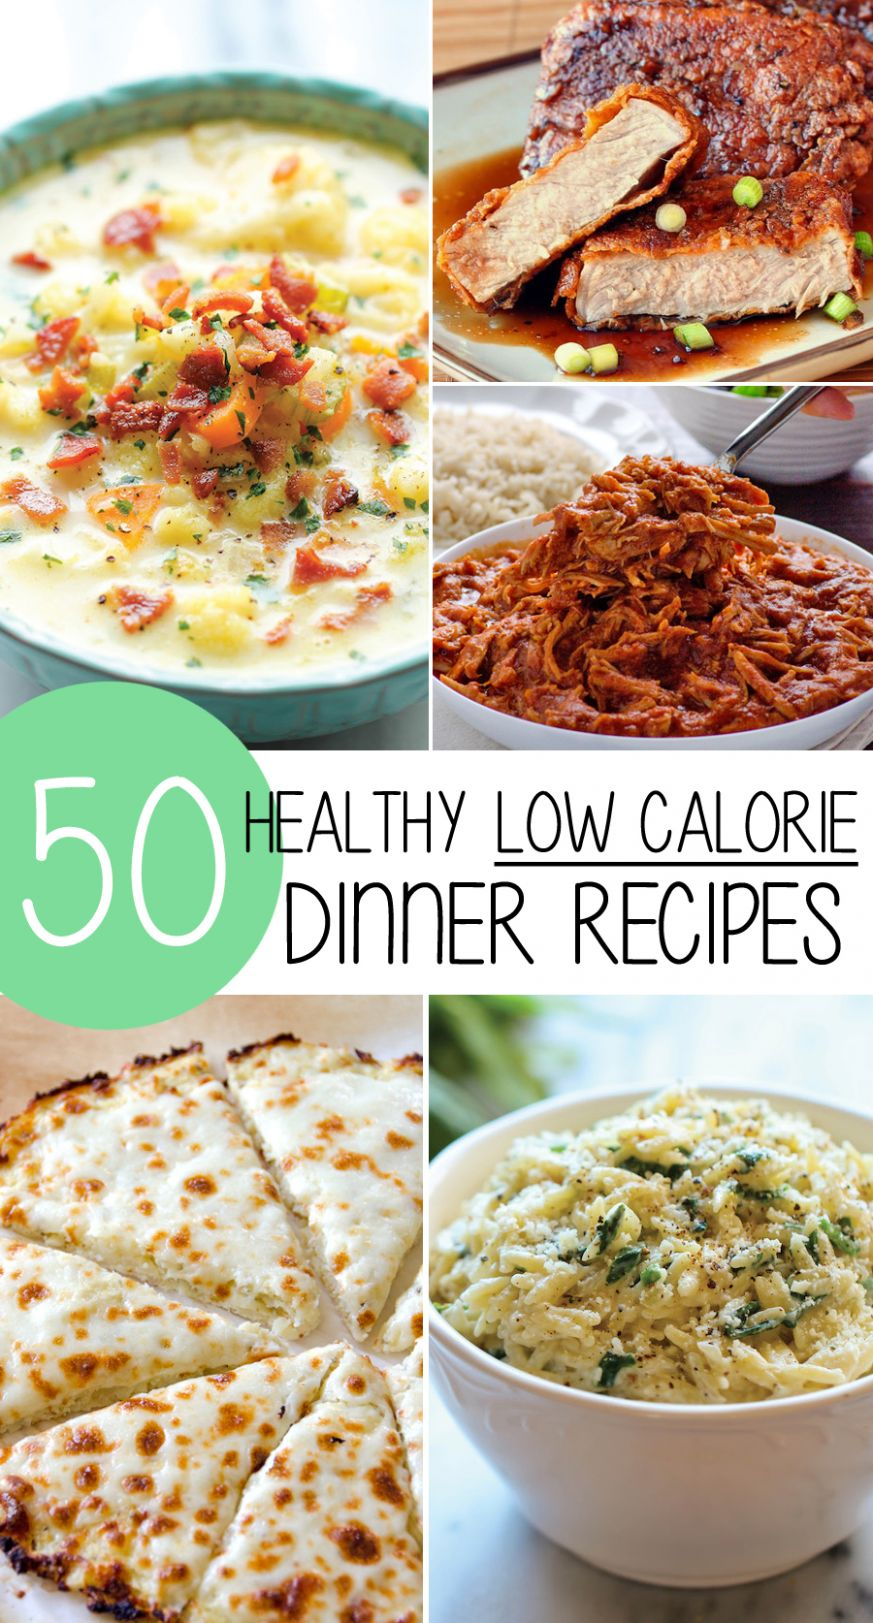 11 Healthy Low Calorie Weight Loss Dinner Recipes! – TrimmedandToned